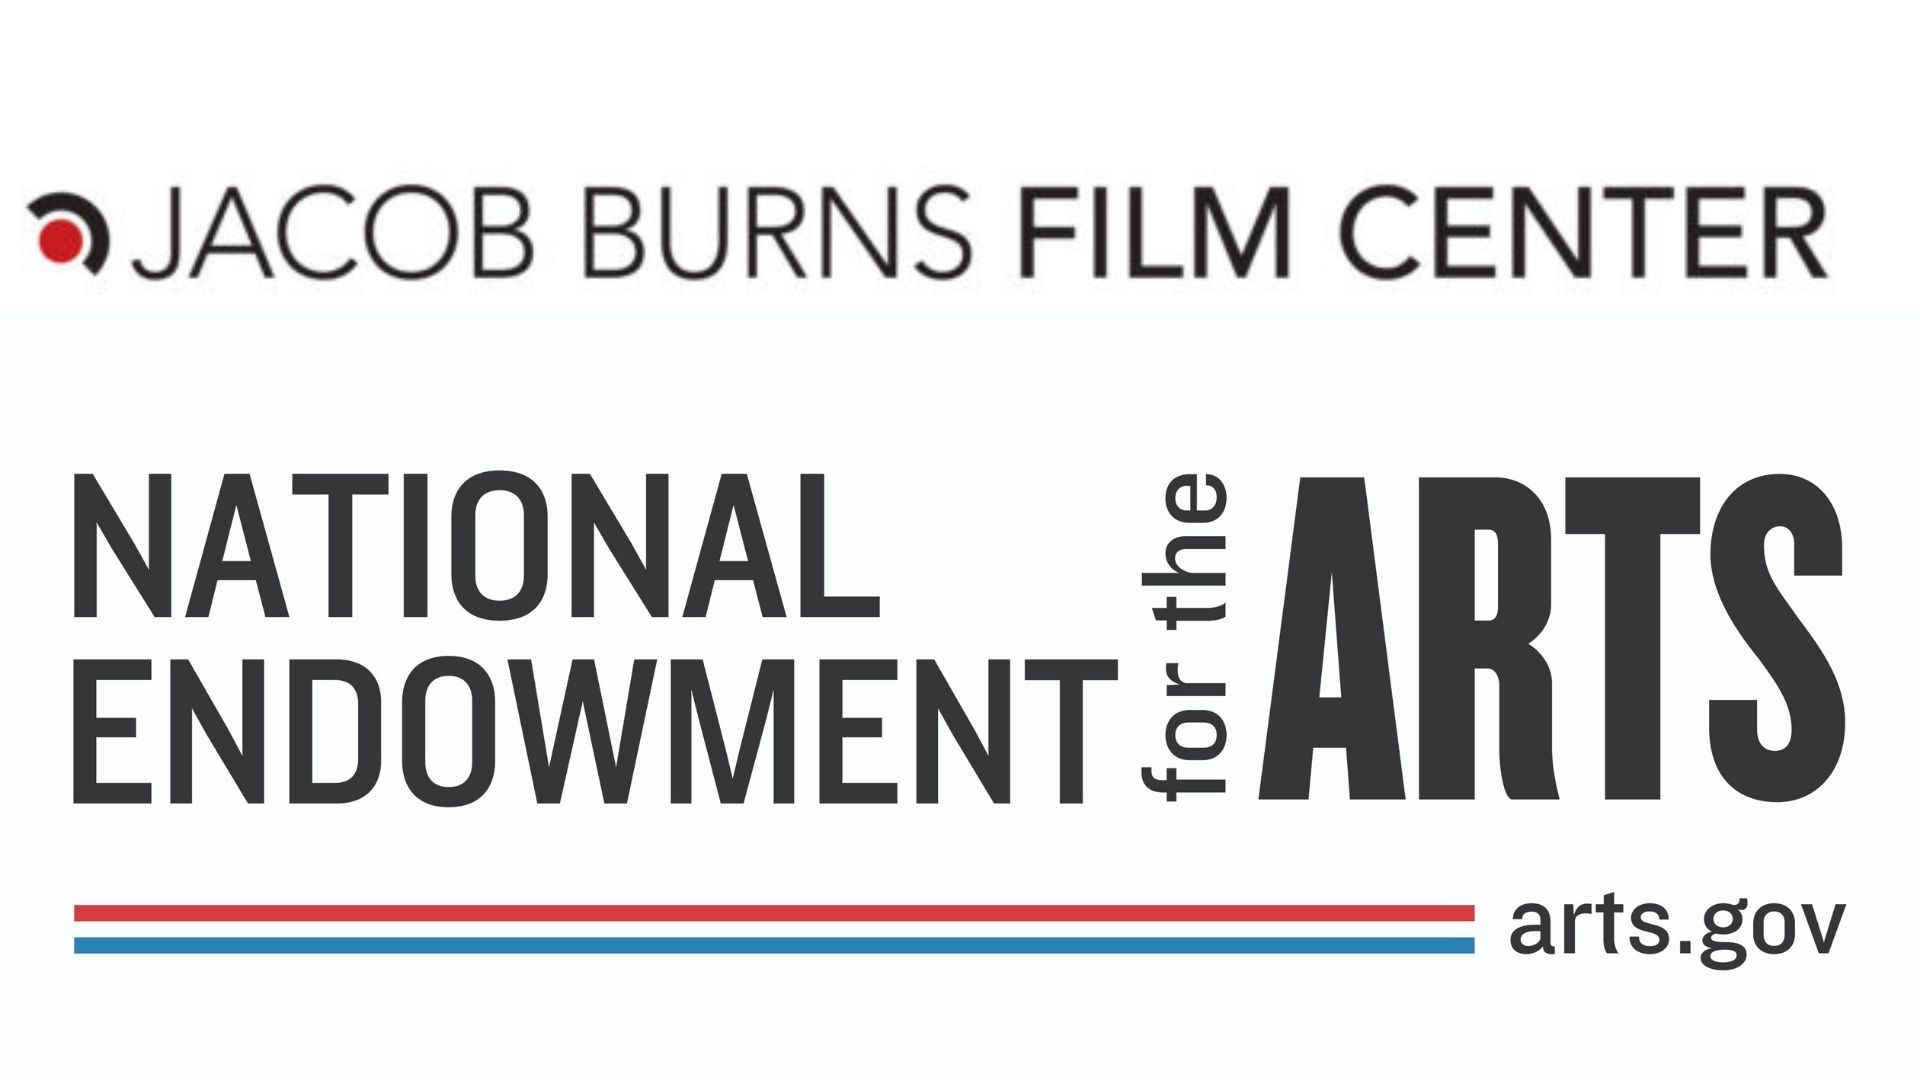 JBFC To Receive $20,000 Grant From the National Endowment for the Arts